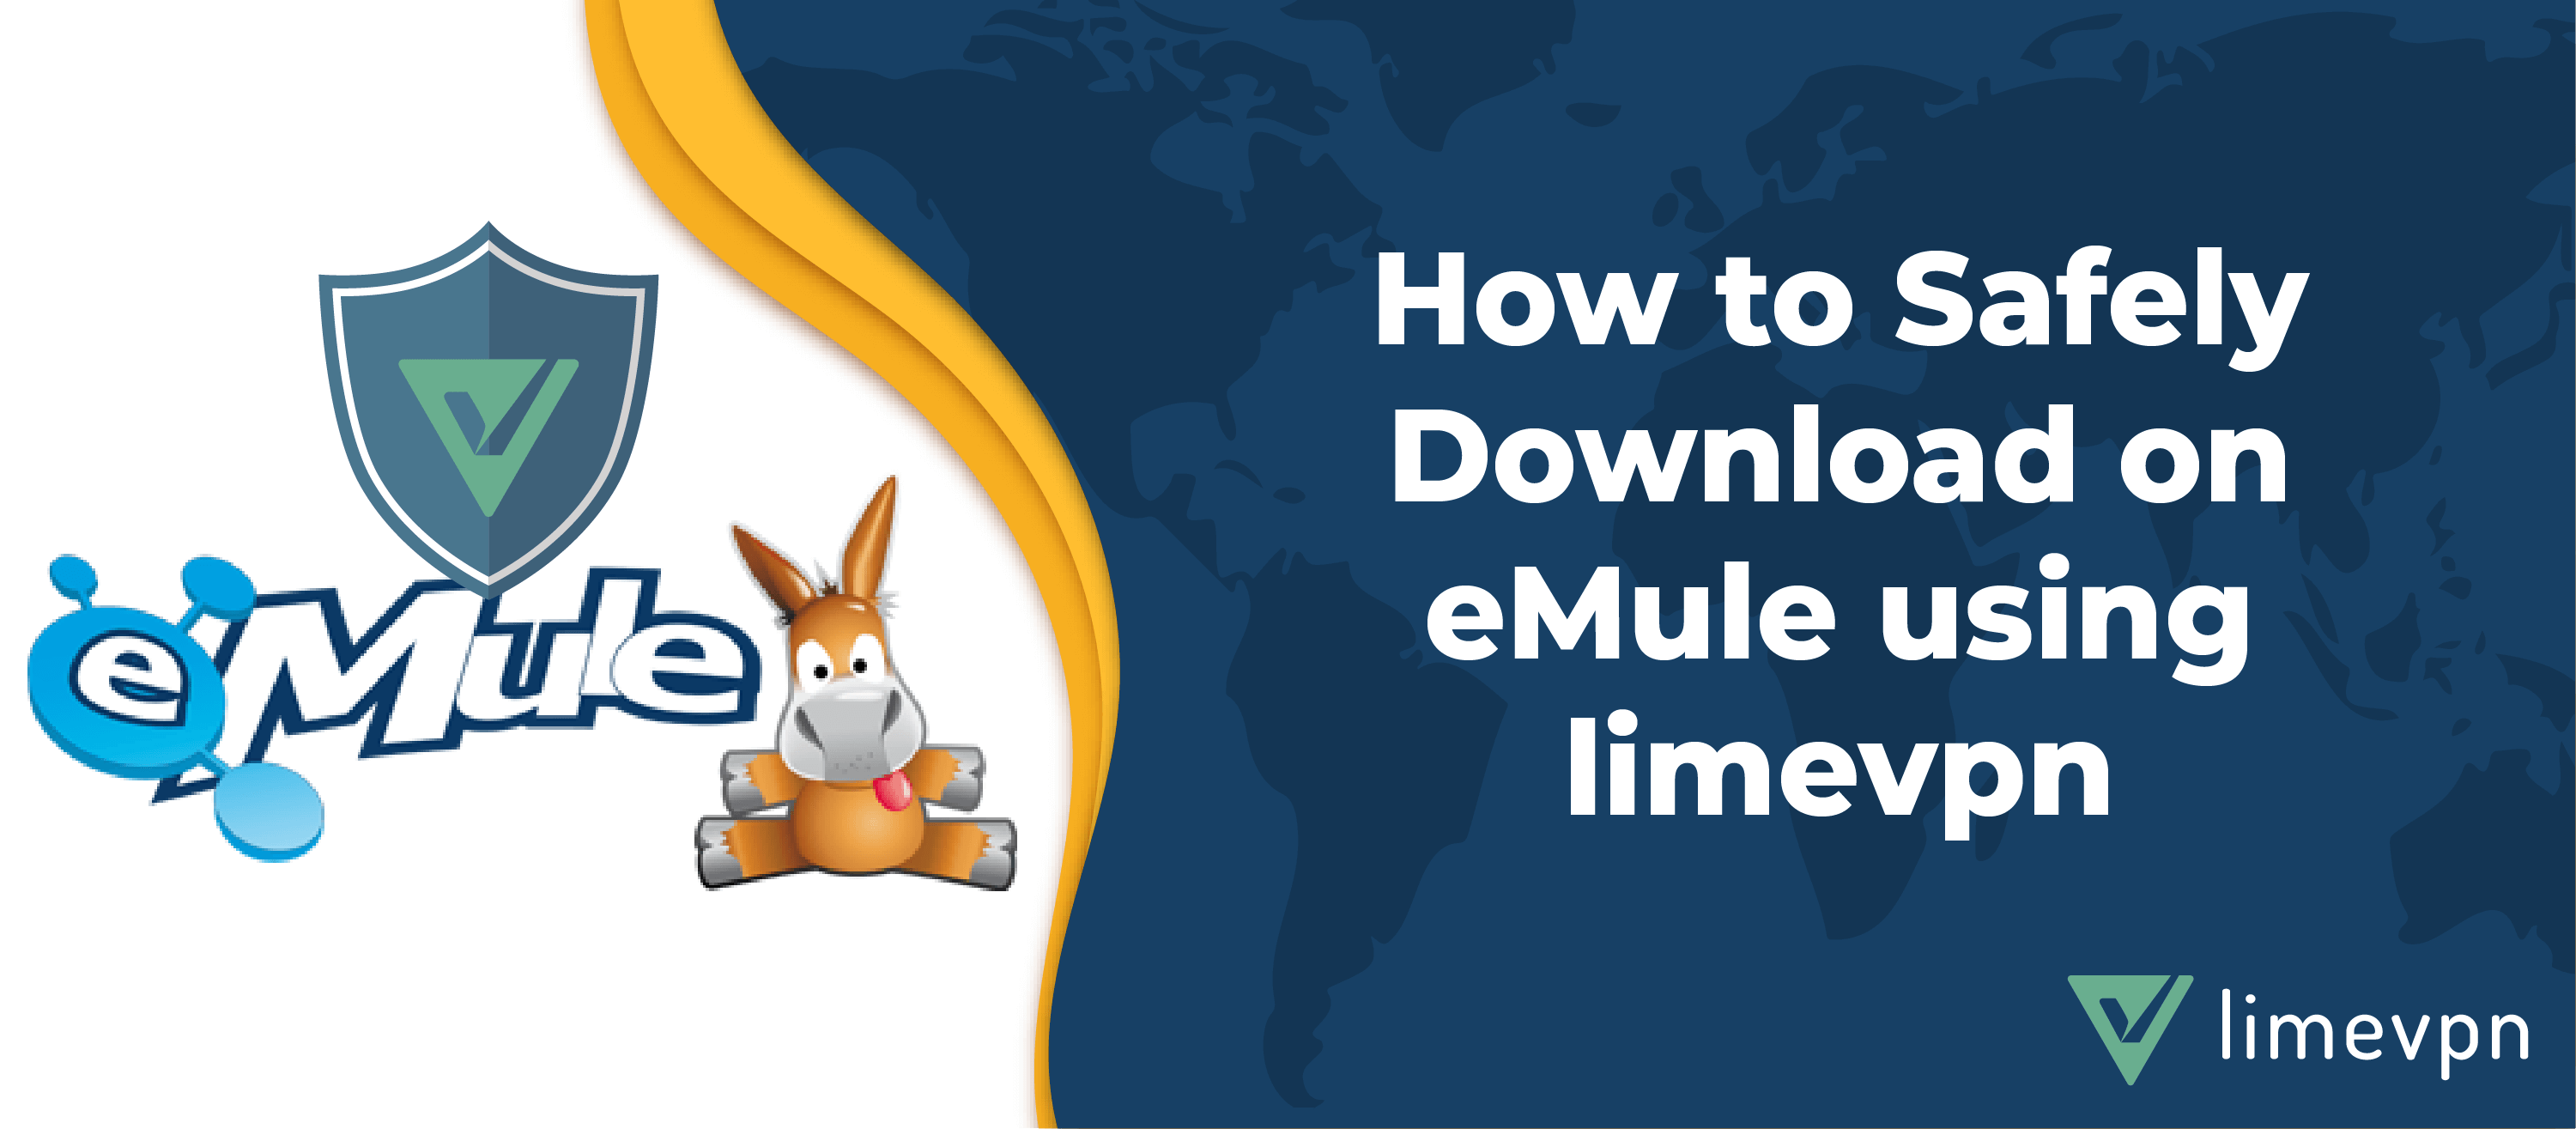 download emule safely with vpn